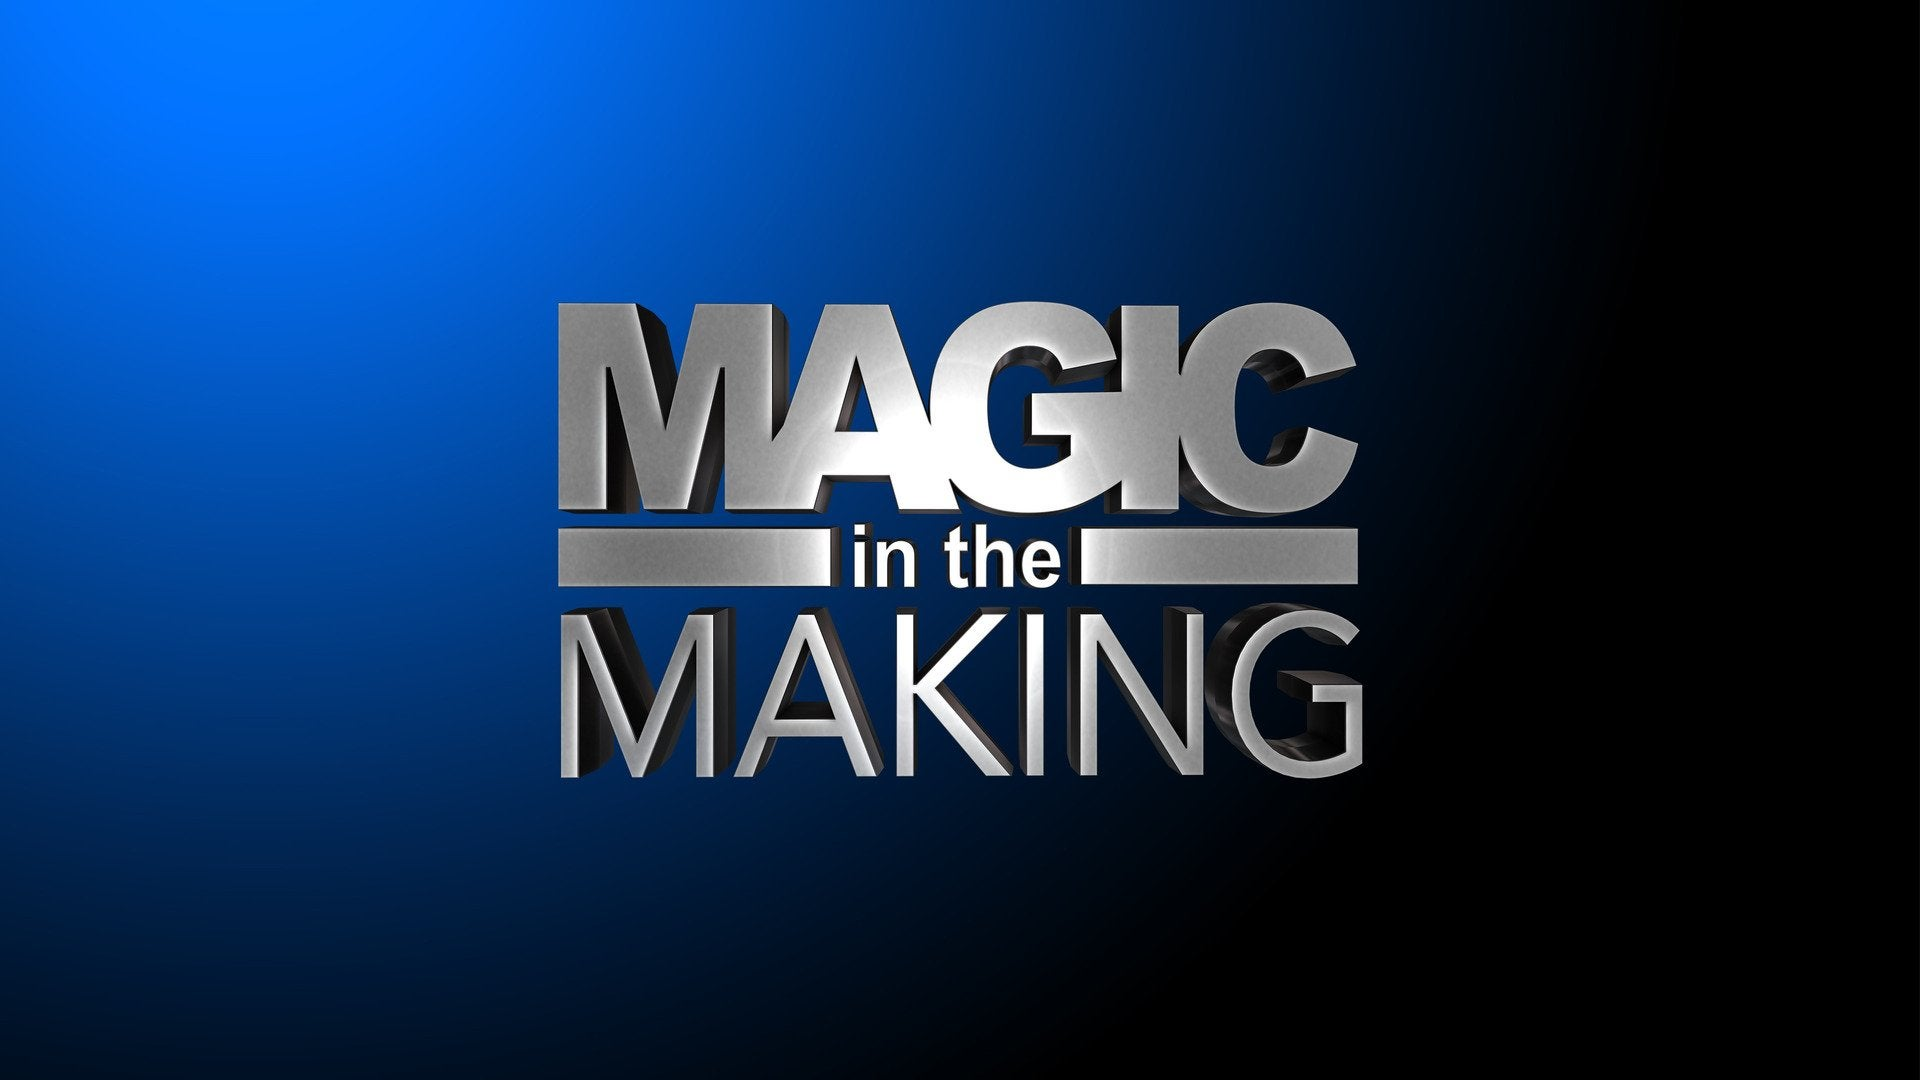 Magic in the Making